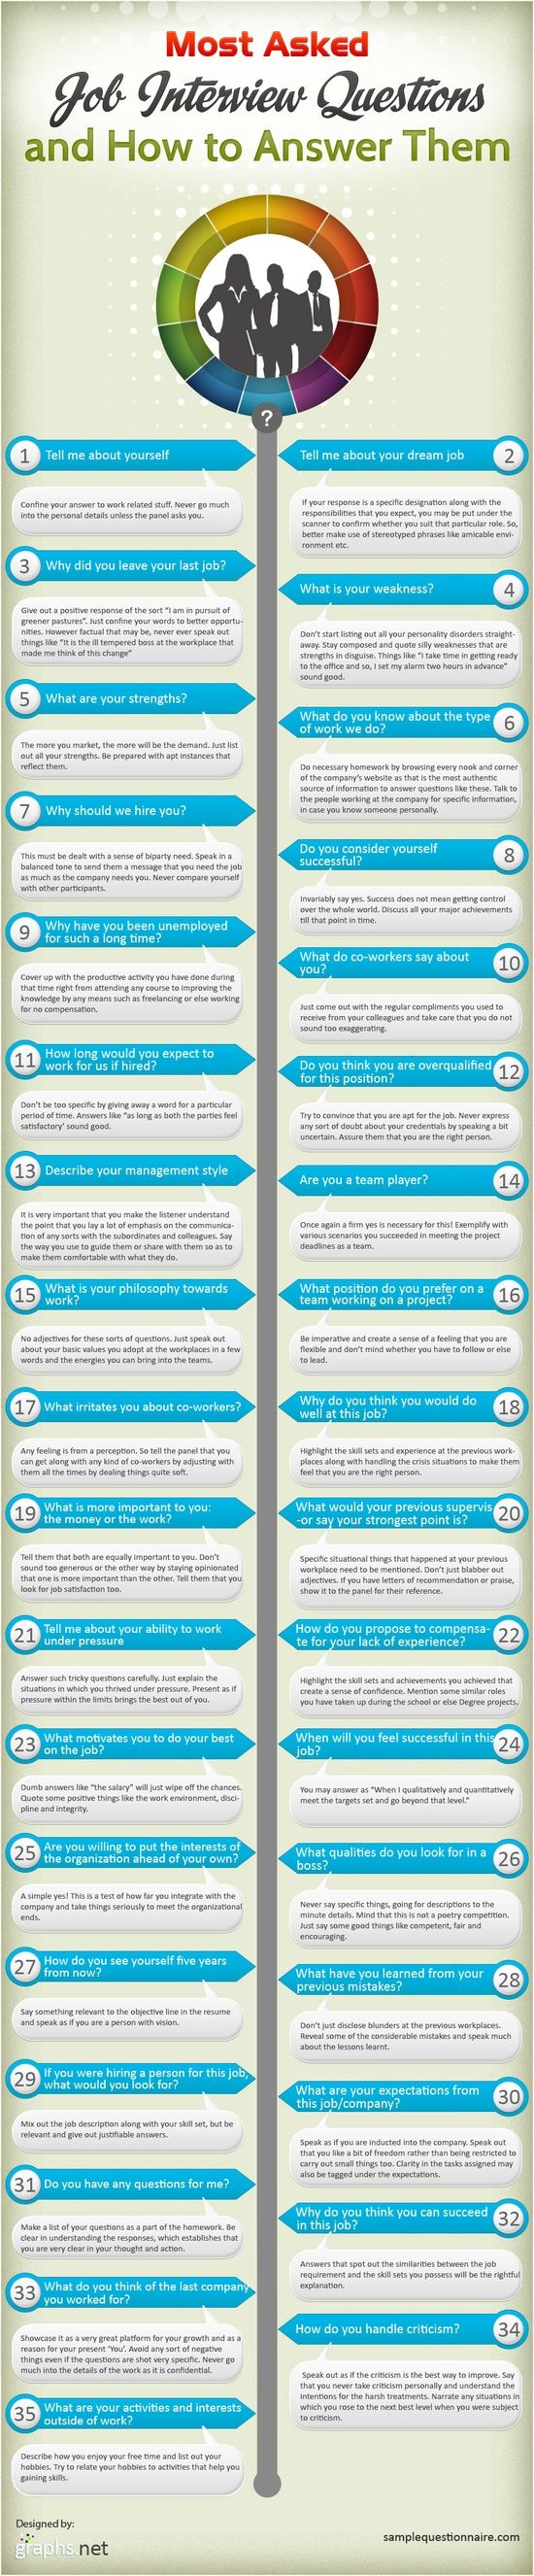 best ideas about leadership interview questions infographic most asked interview questions how to answer them larry ferlazzo s